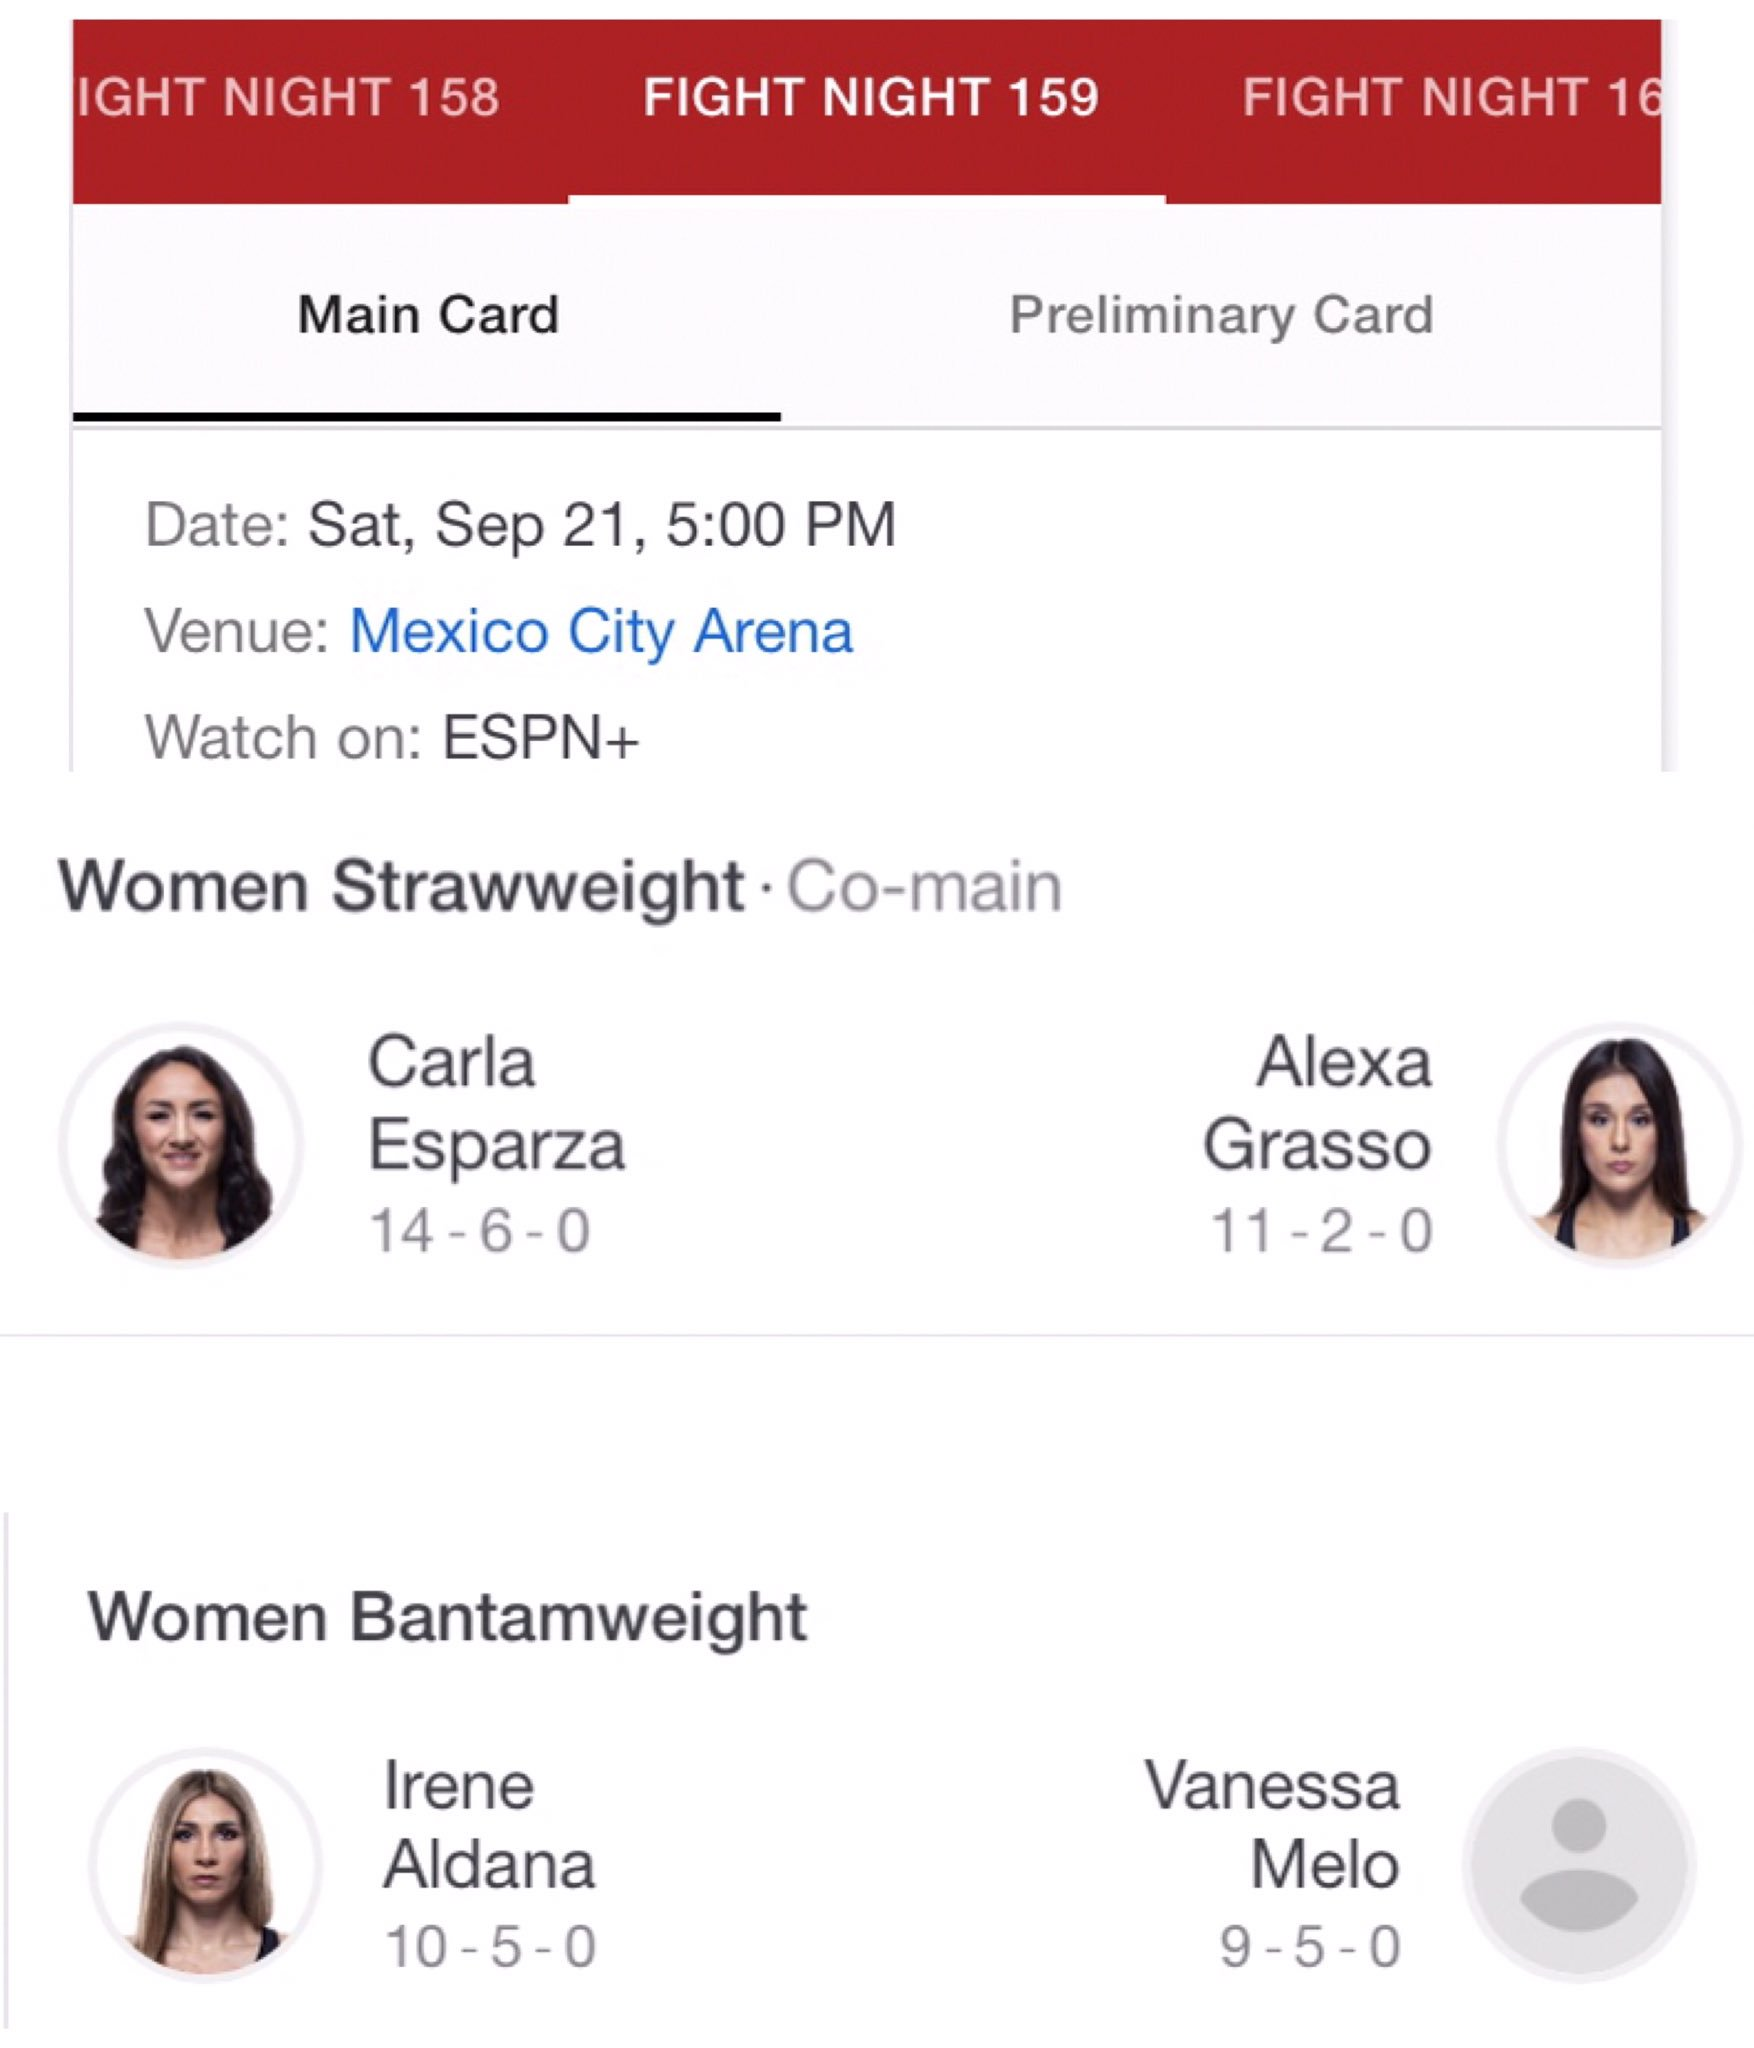 Here's your main card: The Cookie Monster @CarlaEsparza1 will face off against the gritty tough @AlexaGrasso  and @IreneAldana_ will take on Vanessa Melo #ufcmexicocity #fightnight159 #carlaesparza #alexagrasso #irenealdana #vanessamelo #ufc #wmma #mma https://t.co/rxPDI1VC3m